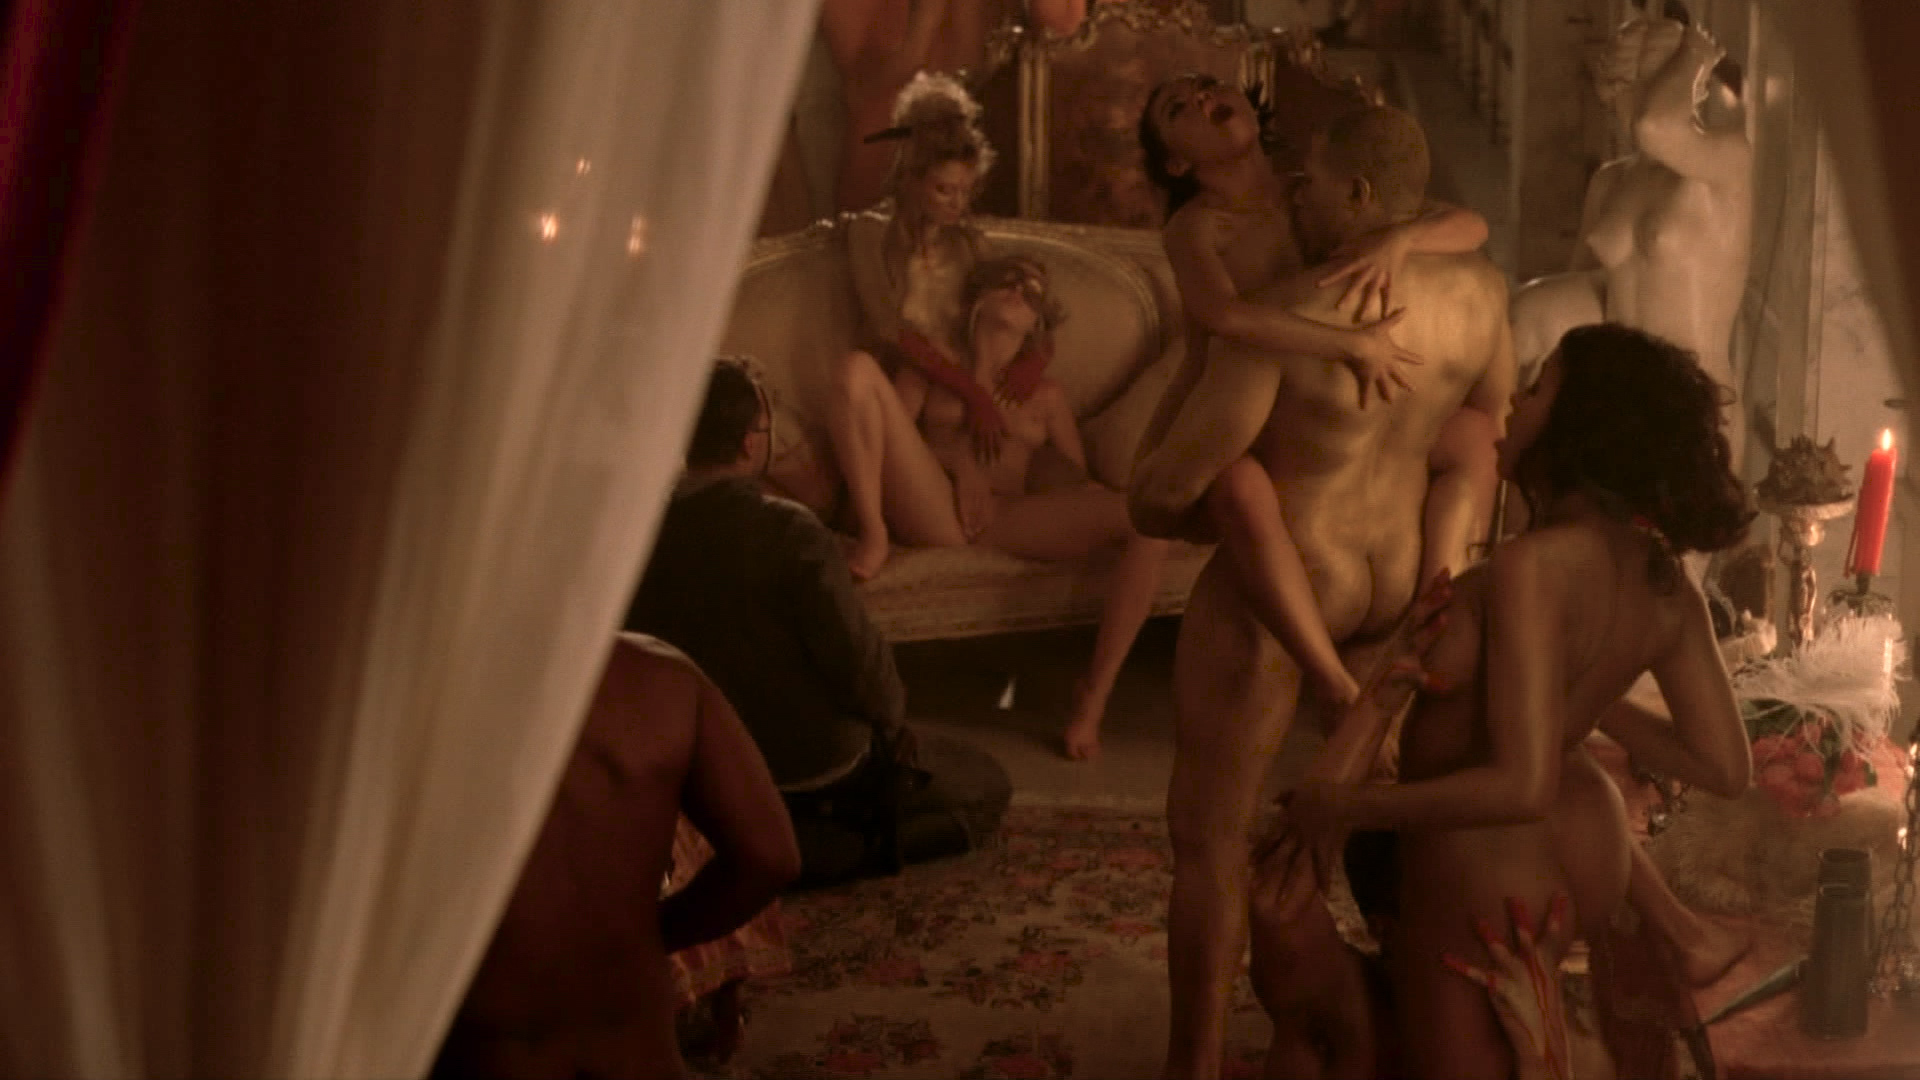 Thandie Newton nude topless Evan Rachel Wood nude nipple and butt other's nude - Westworld (2016) s1e5 HD 1080p (13)